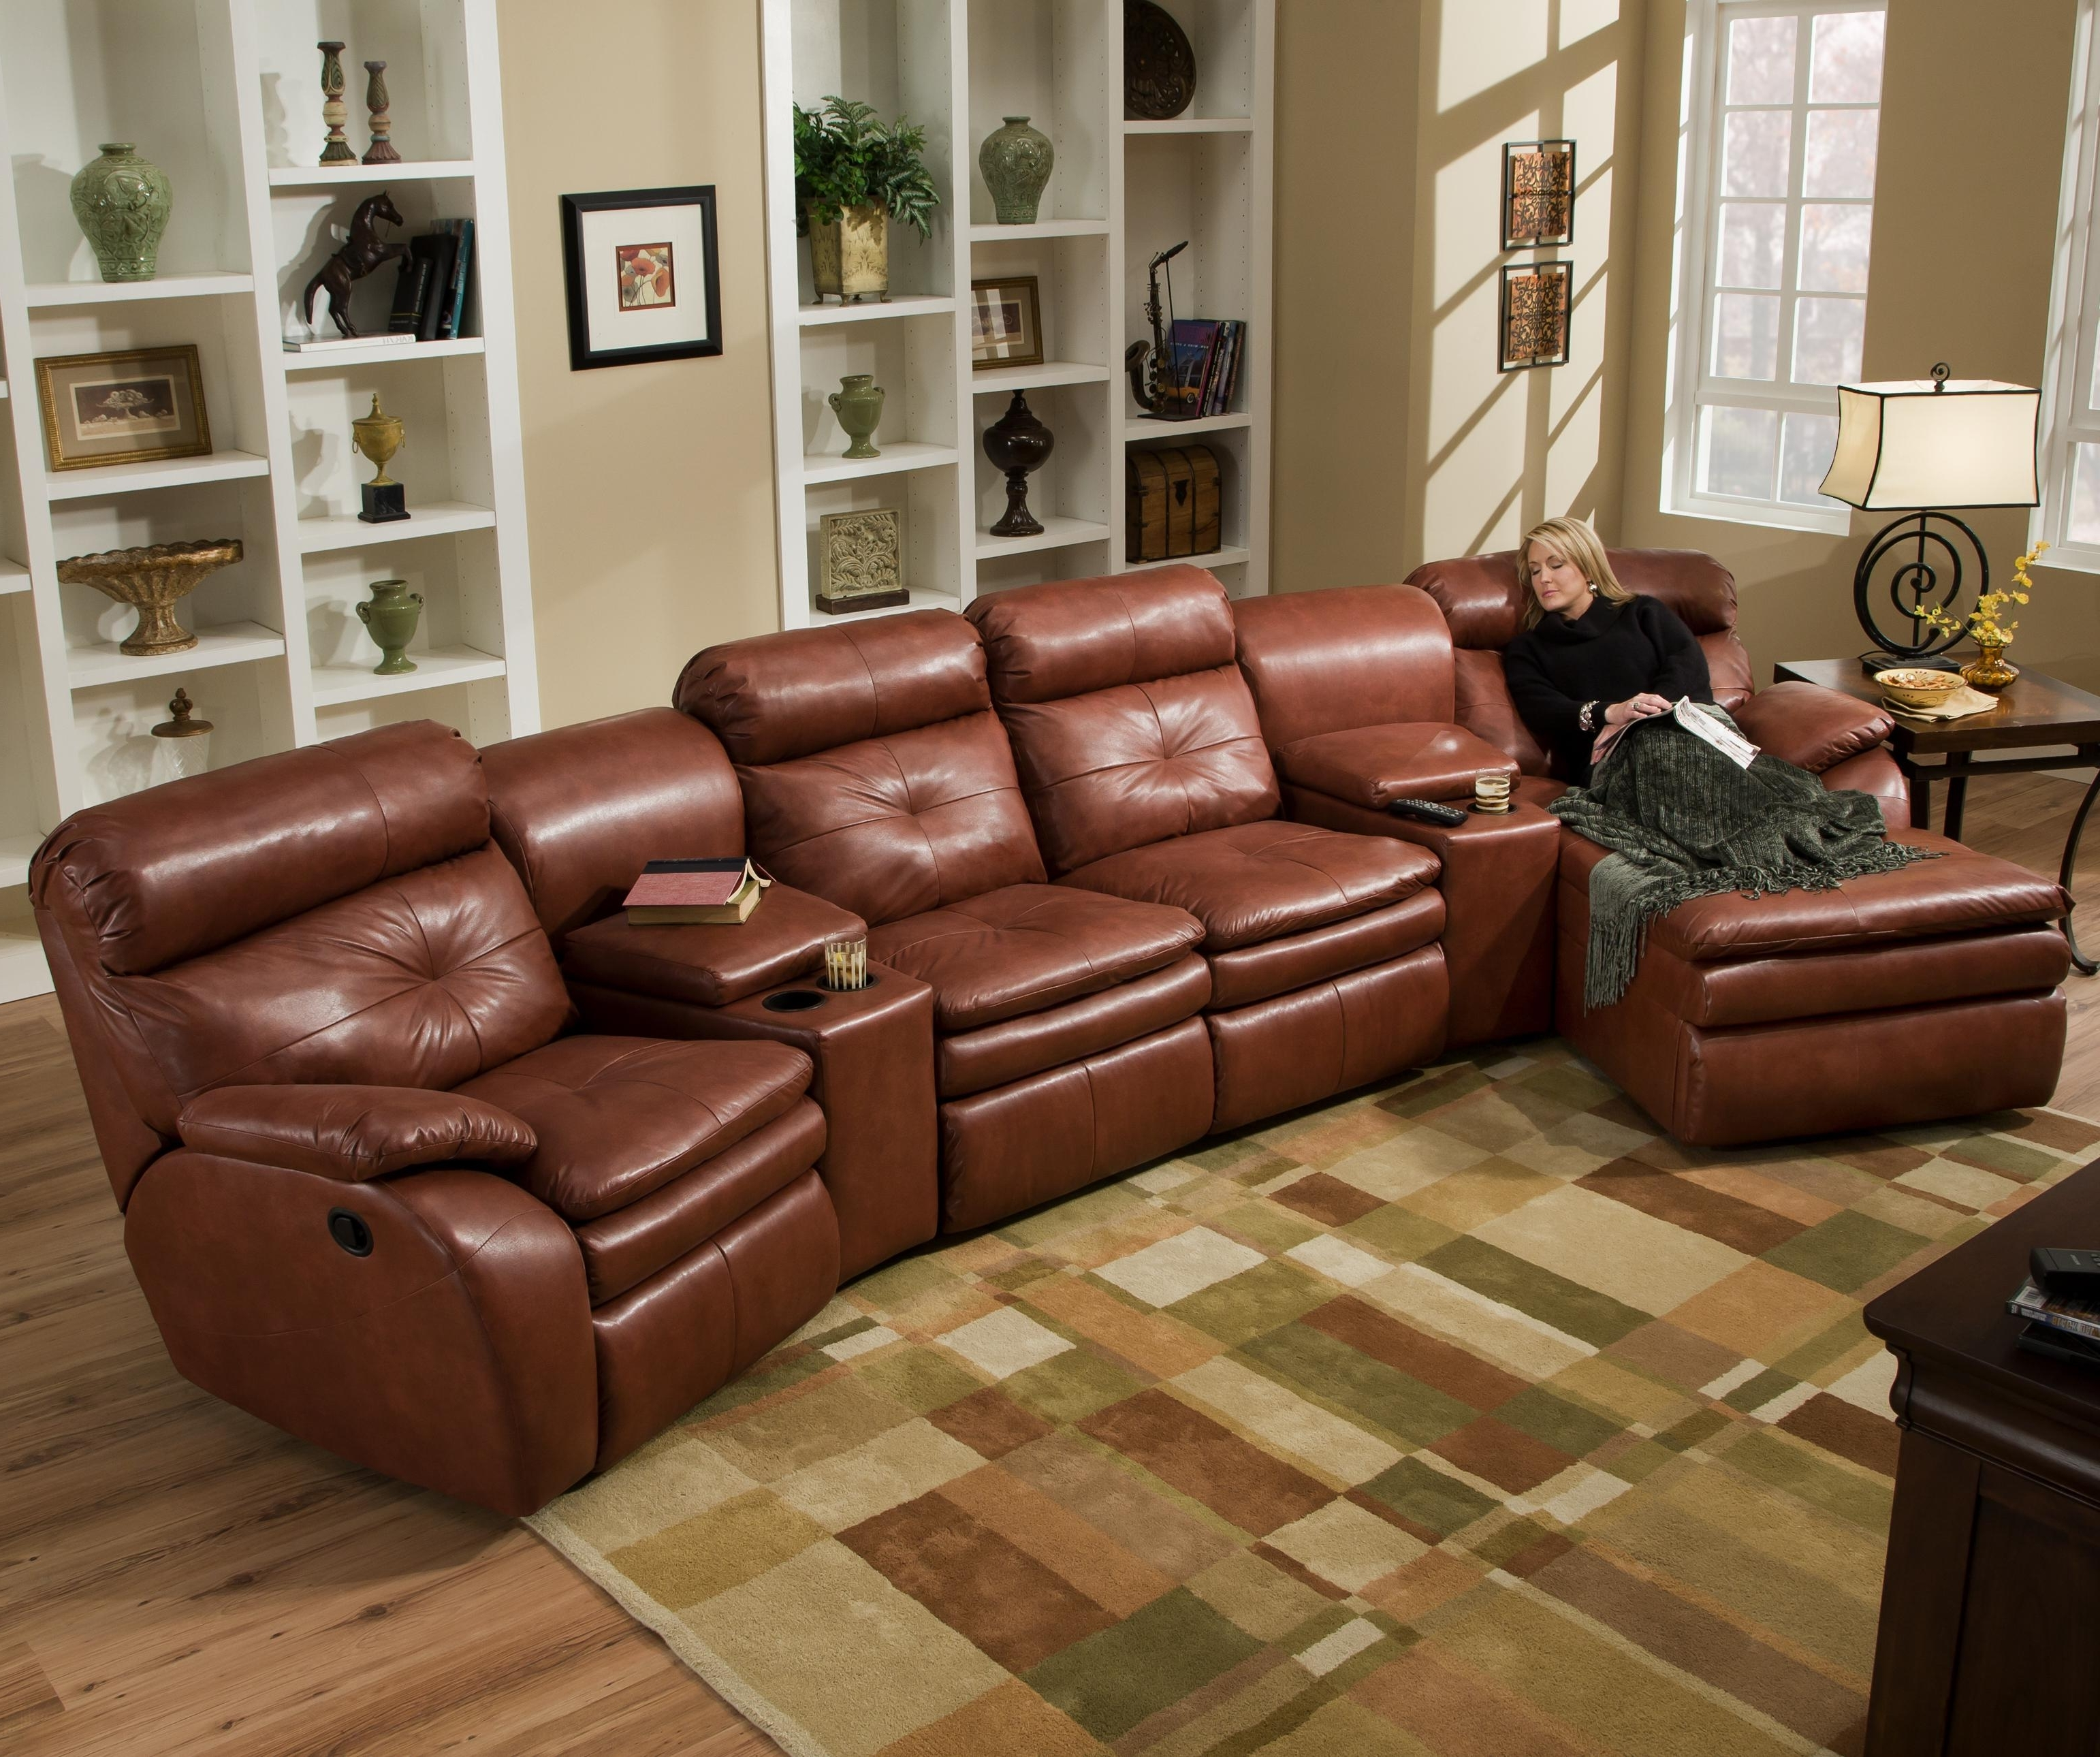 Fashionable Ashley Furniture Sectional Couch Small Sectional Sofa Bed Small With Sectional Sofas With Recliners And Chaise (View 2 of 15)